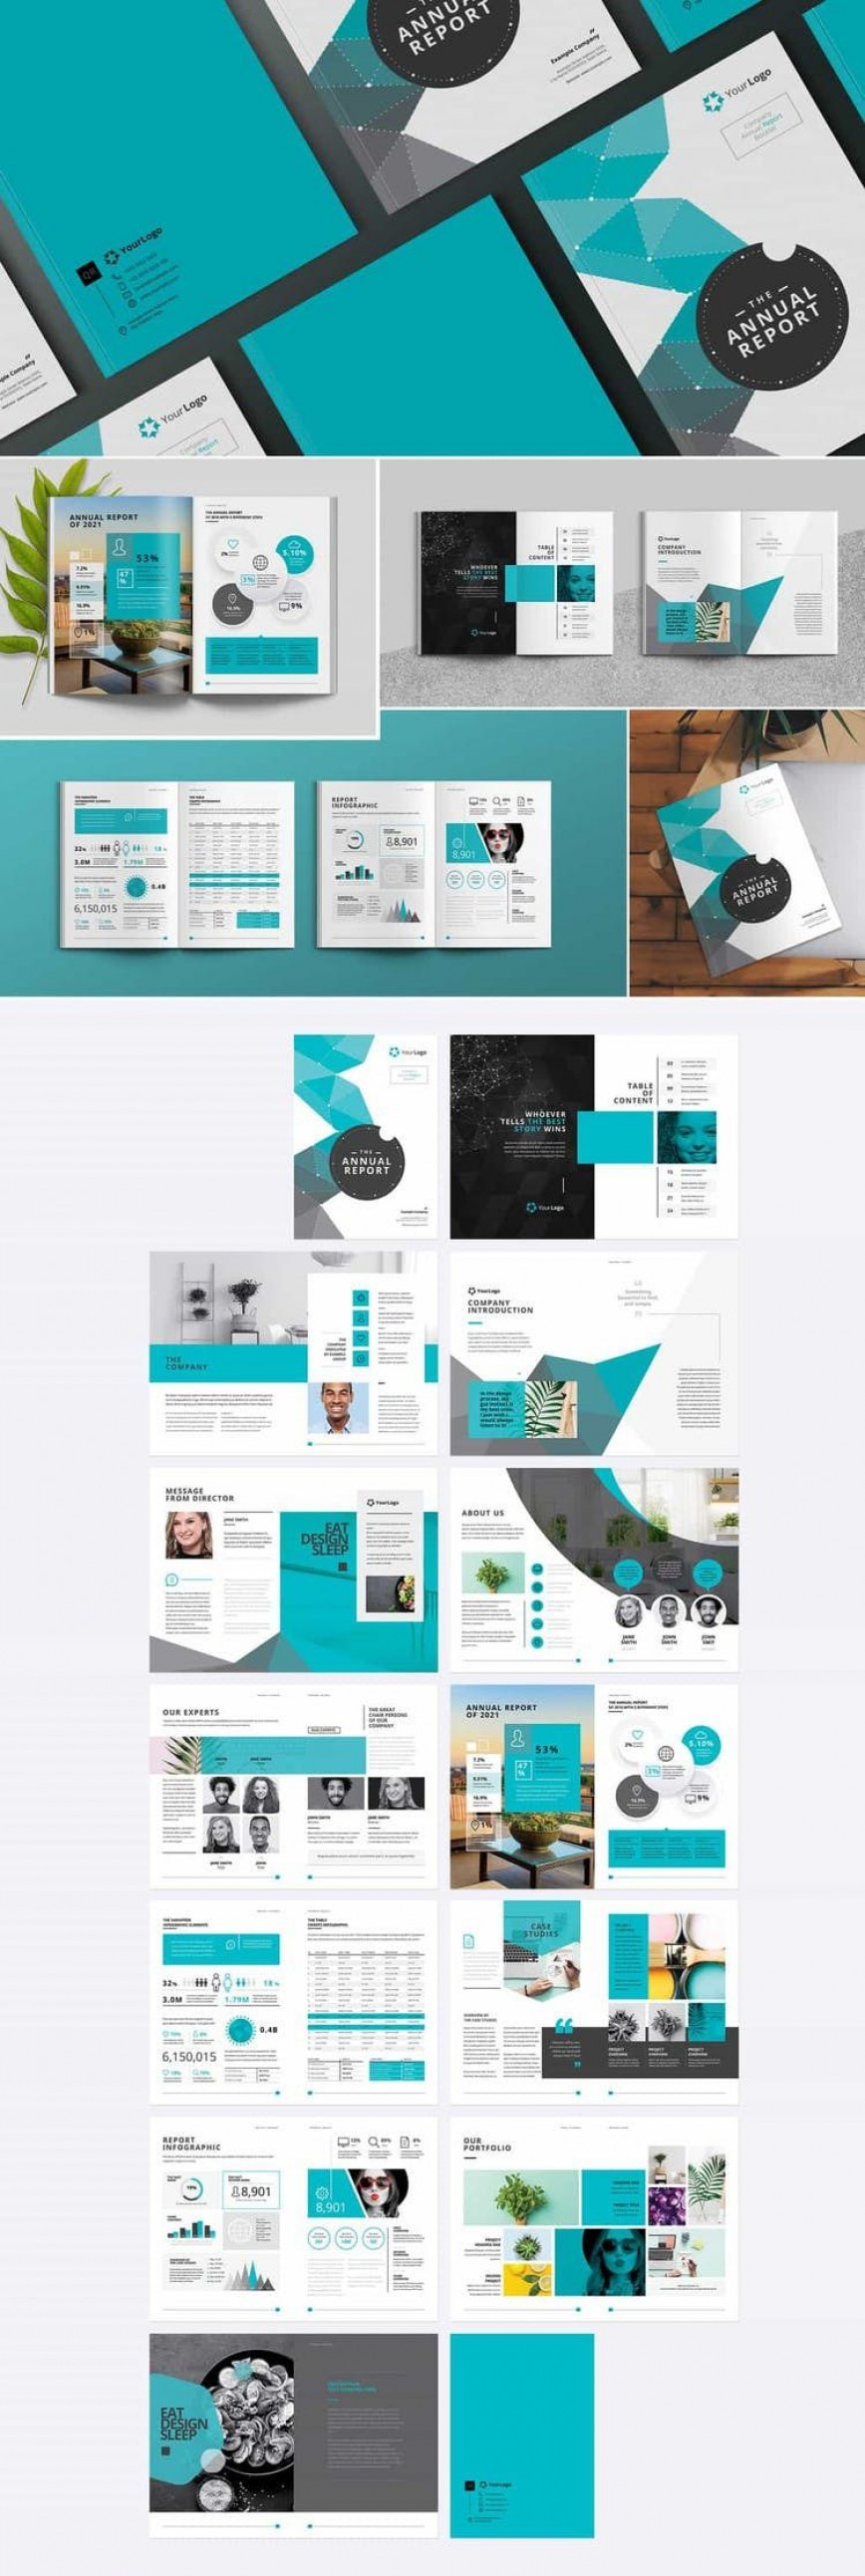 005 Archaicawful Annual Report Design Template Photo  Templates Free Download Indesign Vector